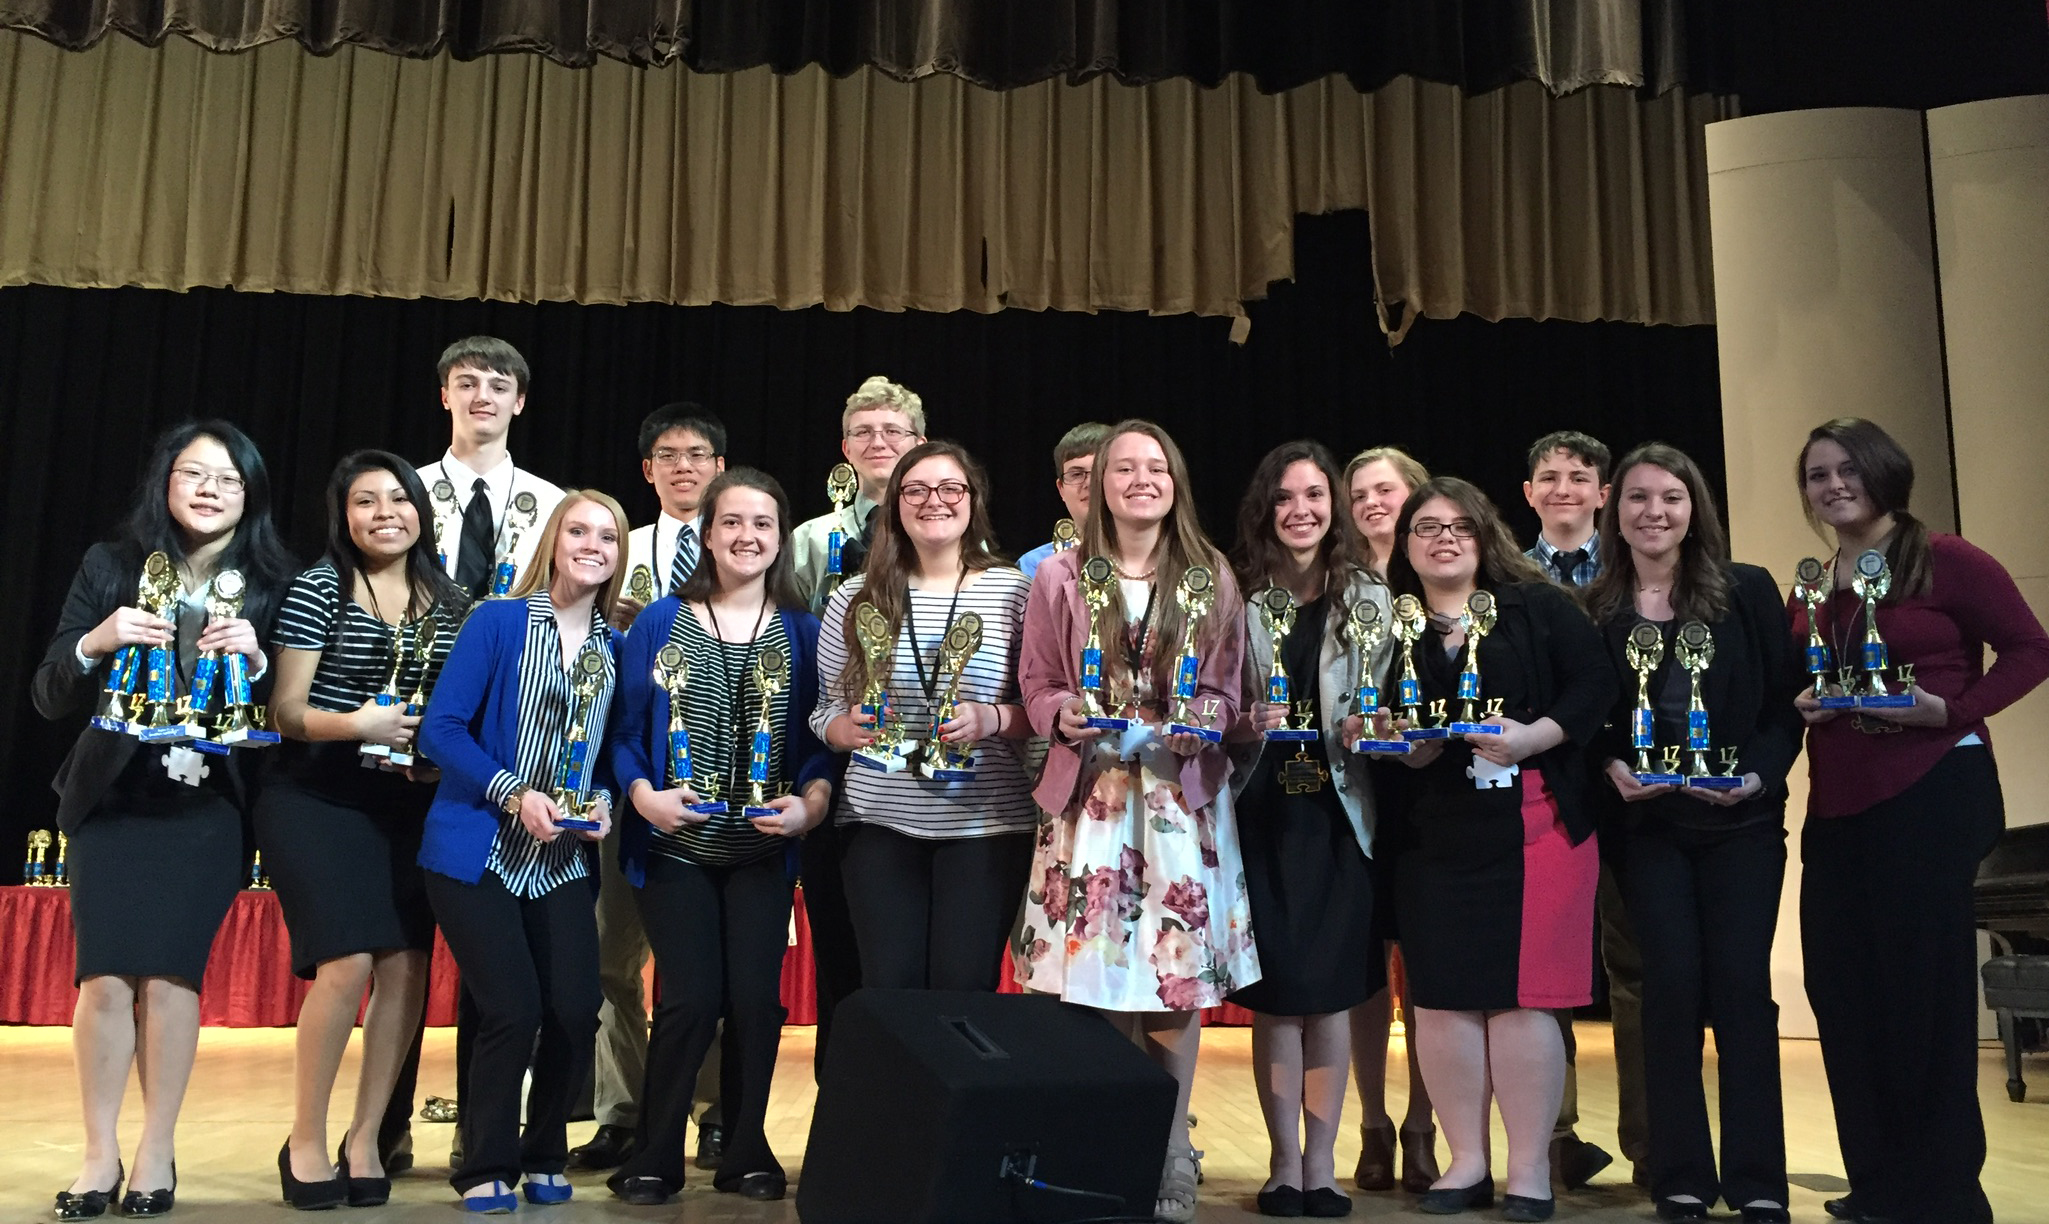 On Thursday, March 9, 2017, thirty-three members of the CCATC FBLA chapter competed at the Regional Leadership Conference.